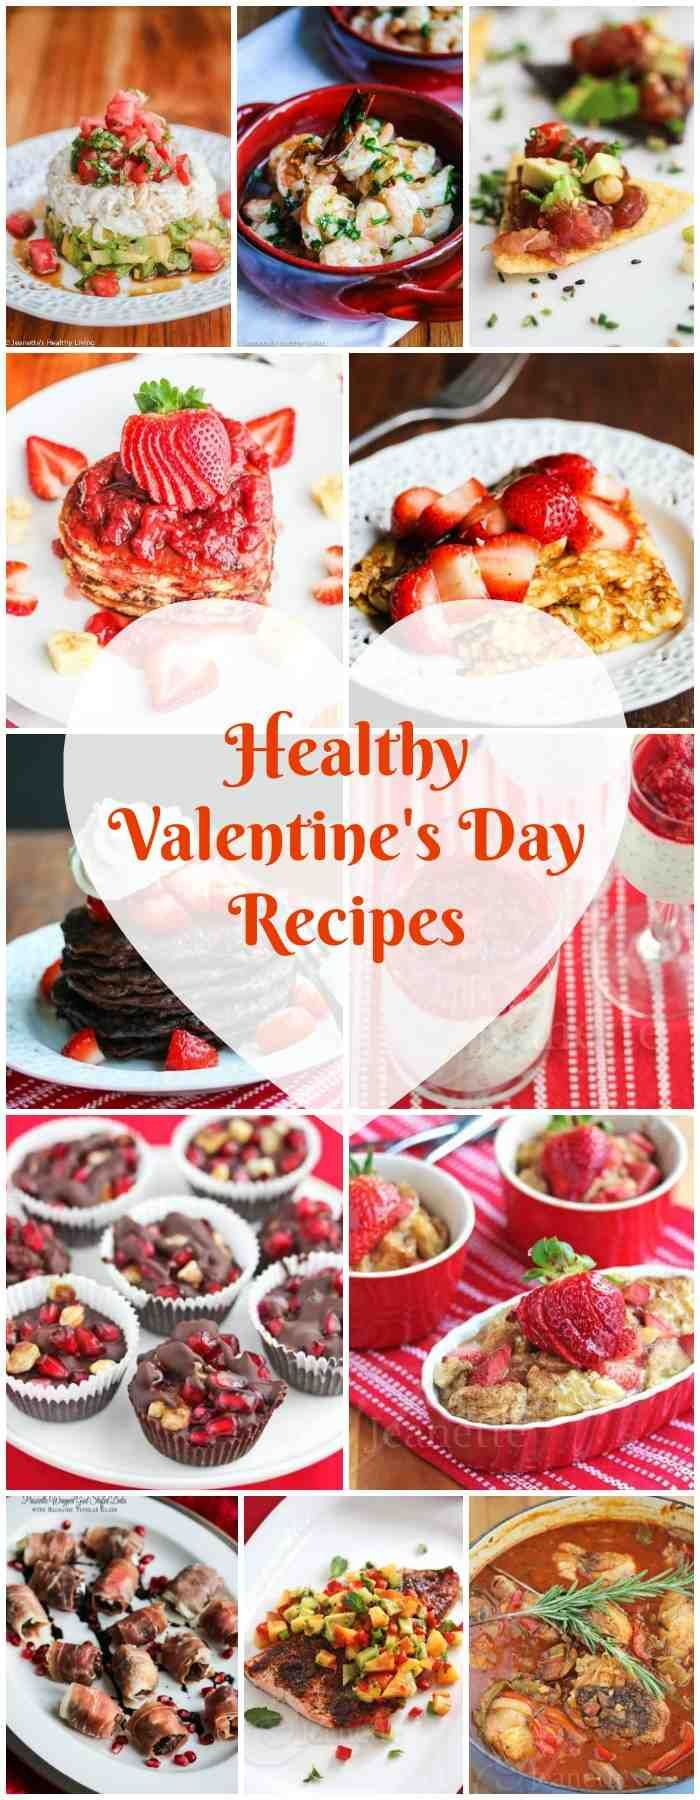 Healthy Valentines Day Recipes - treat your sweetheart to these delicious romantic dishes, from breakfast through dinner